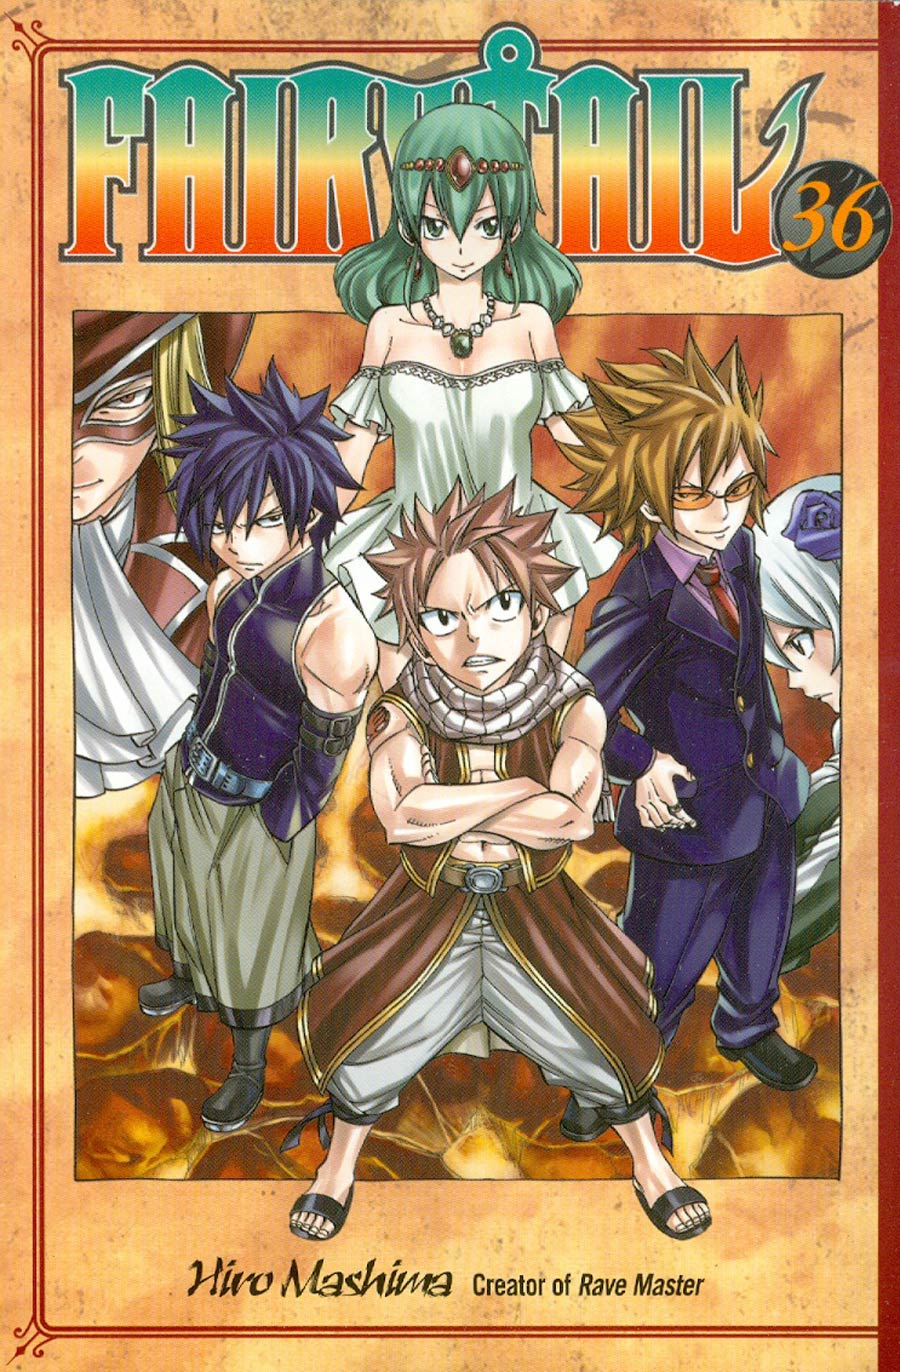 Fairy Tail Vol 36 GN